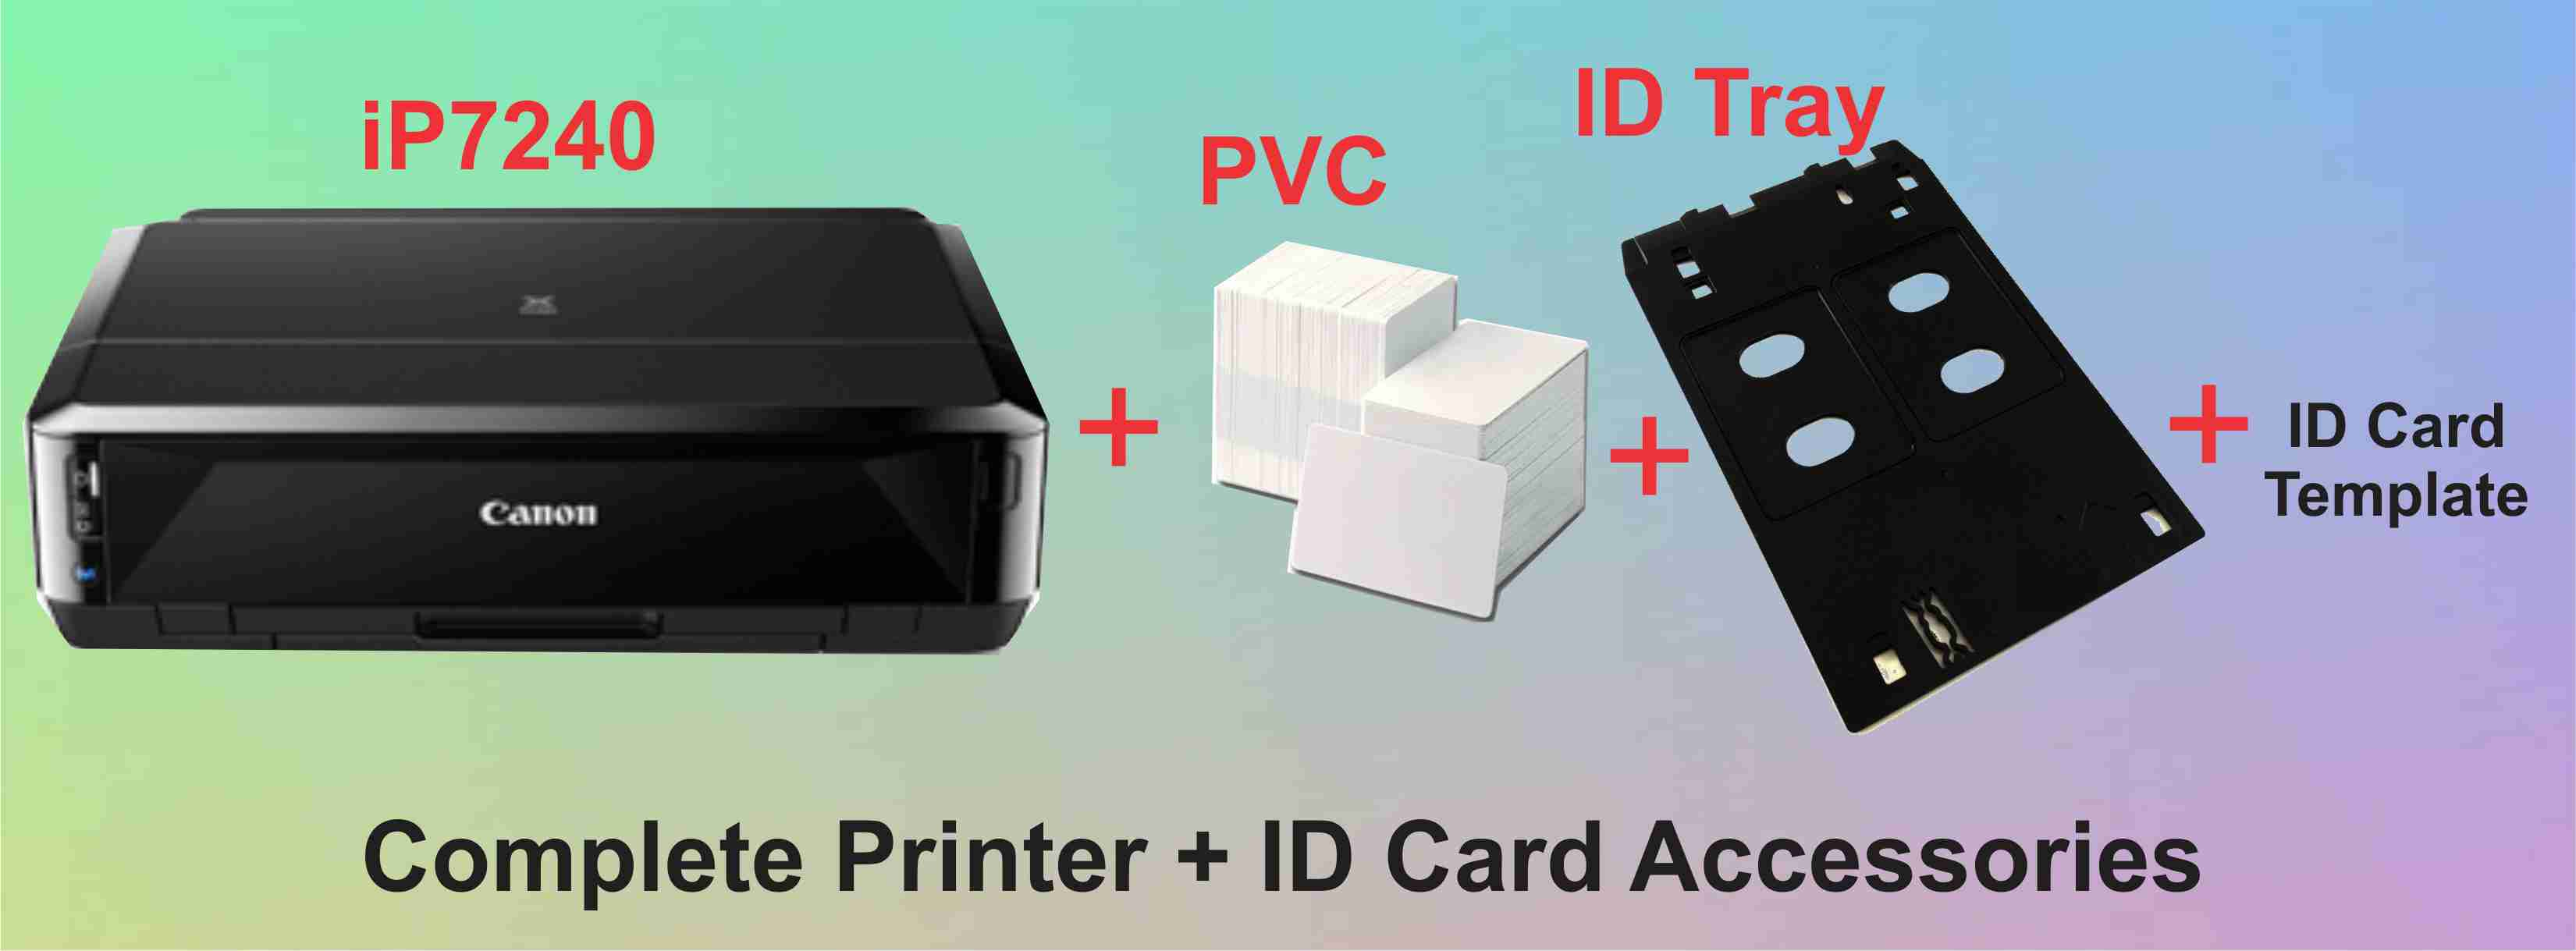 Buy complete canon ip7240 printer id card printing accessories buy ip7240 printer id pvc 1 pack id card tray id card template n50000 reheart Images